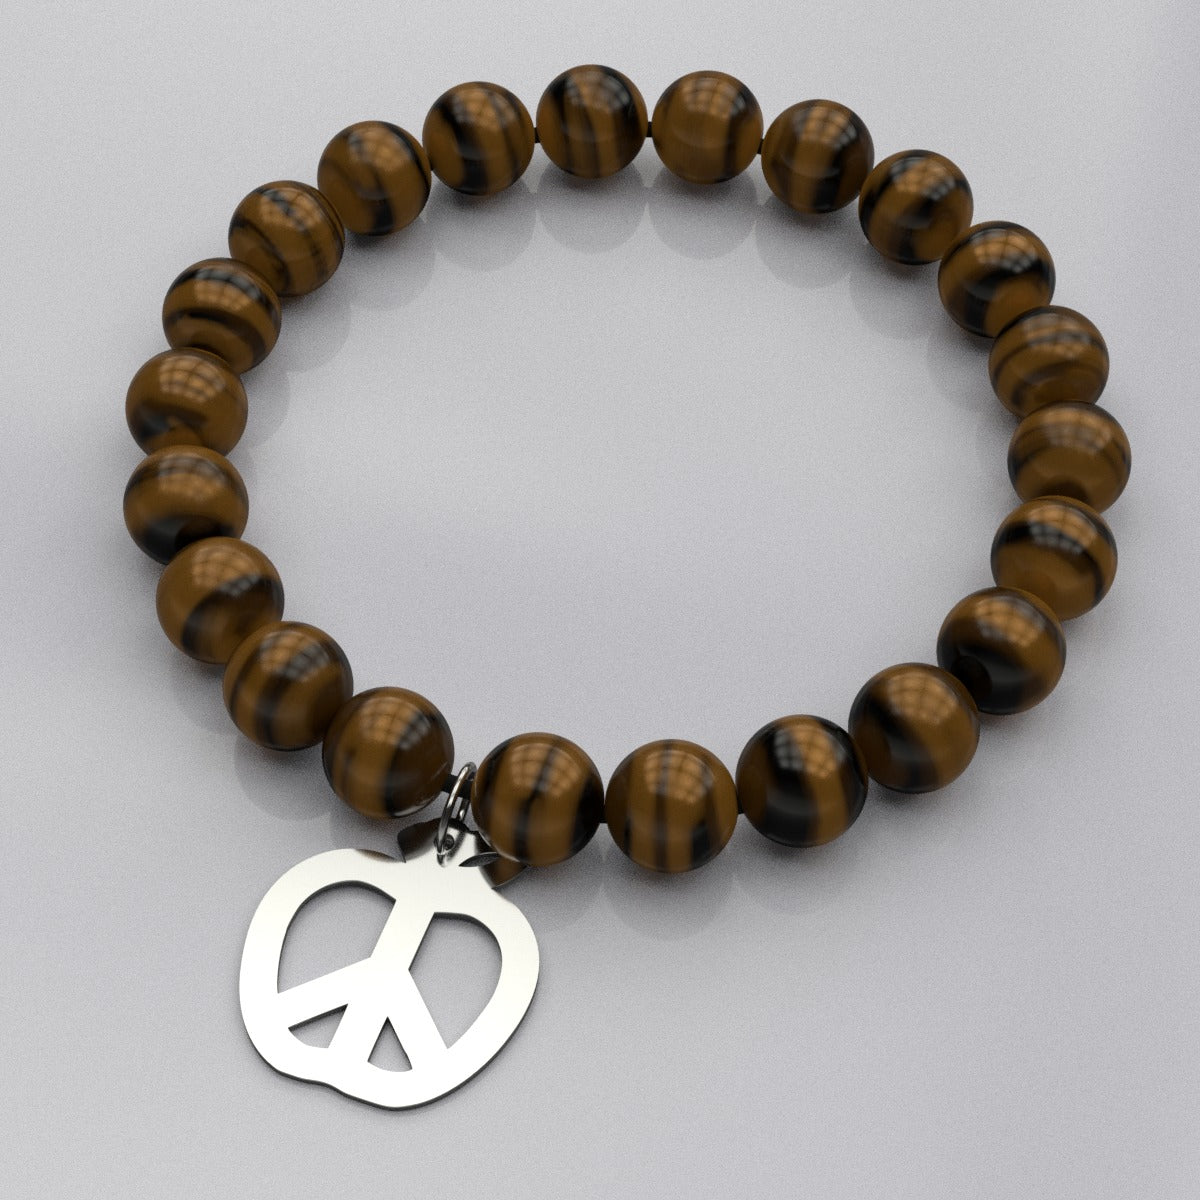 Teach Peace Bead Bracelet with Silver Charm - Free Shipping